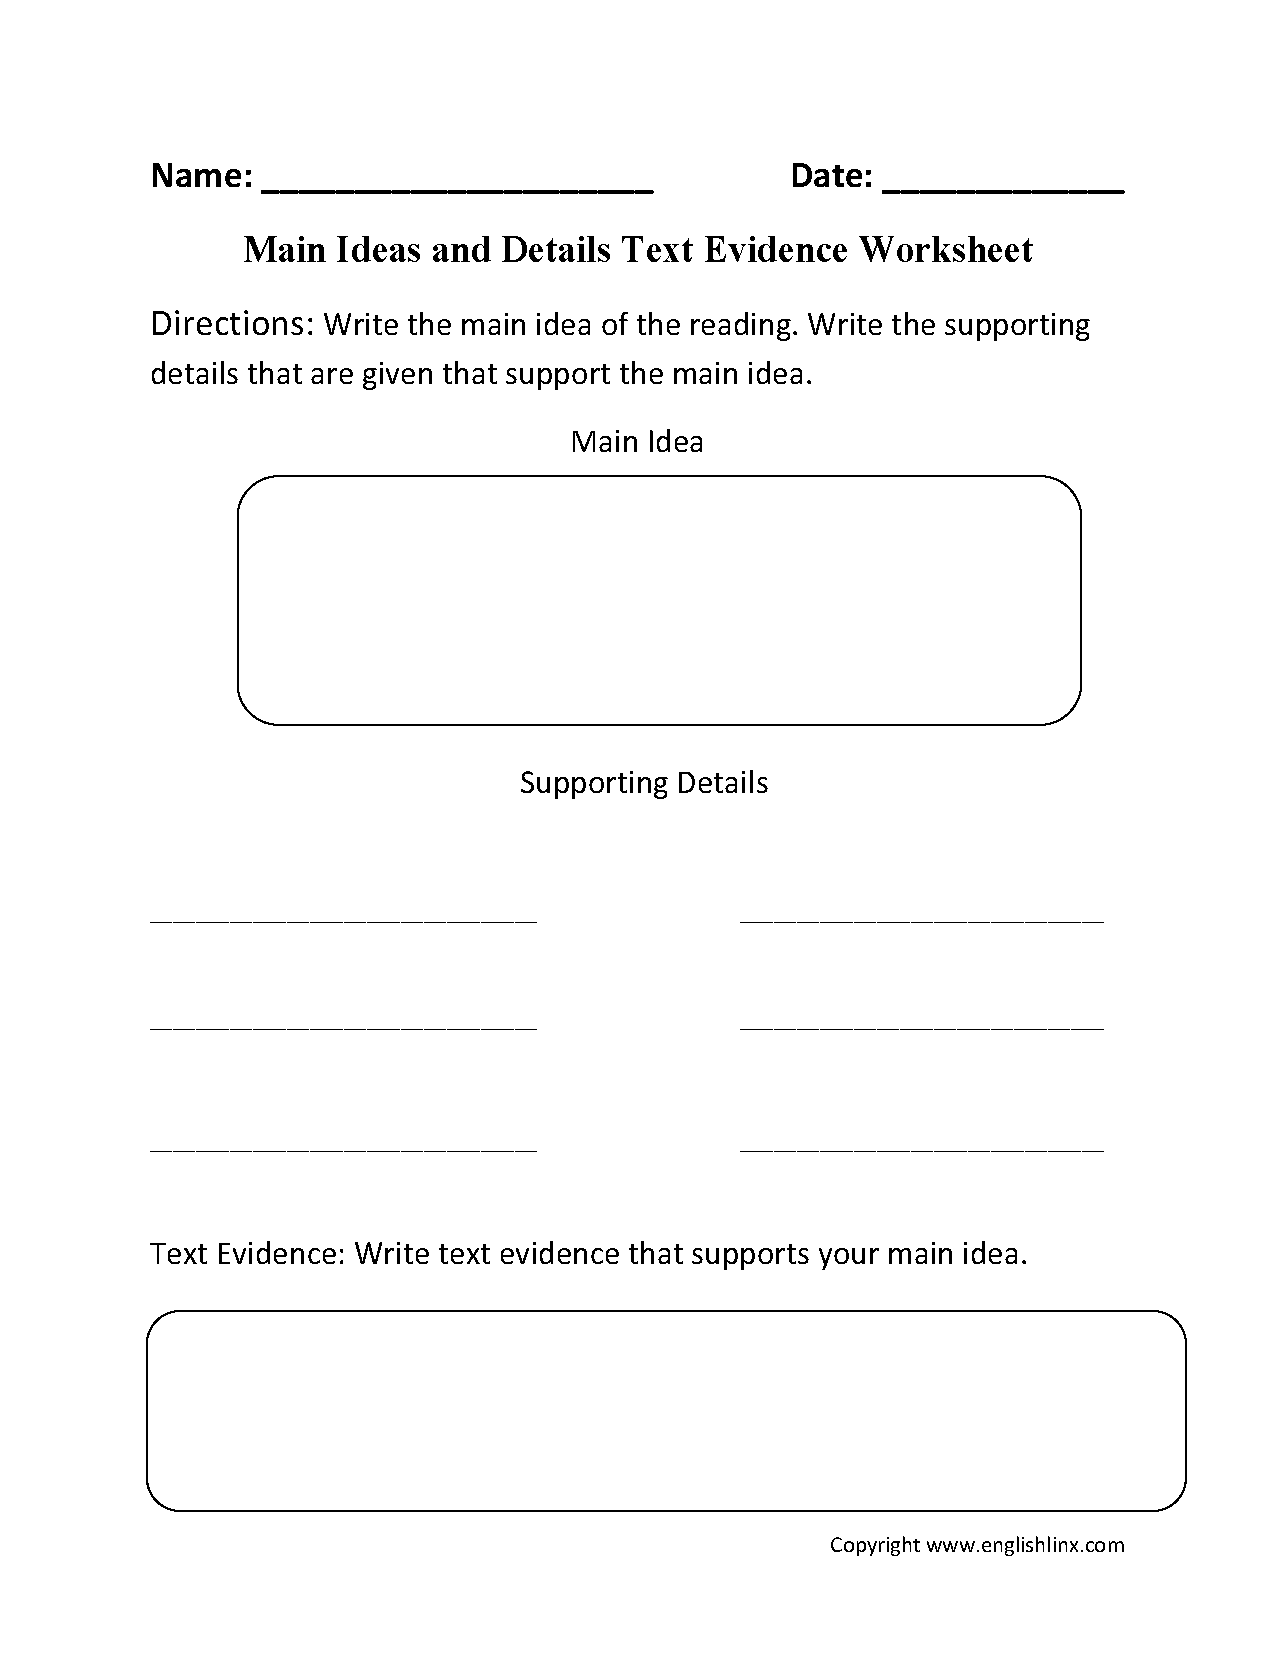 Content by Subject Worksheets – Main Idea and Details Worksheets